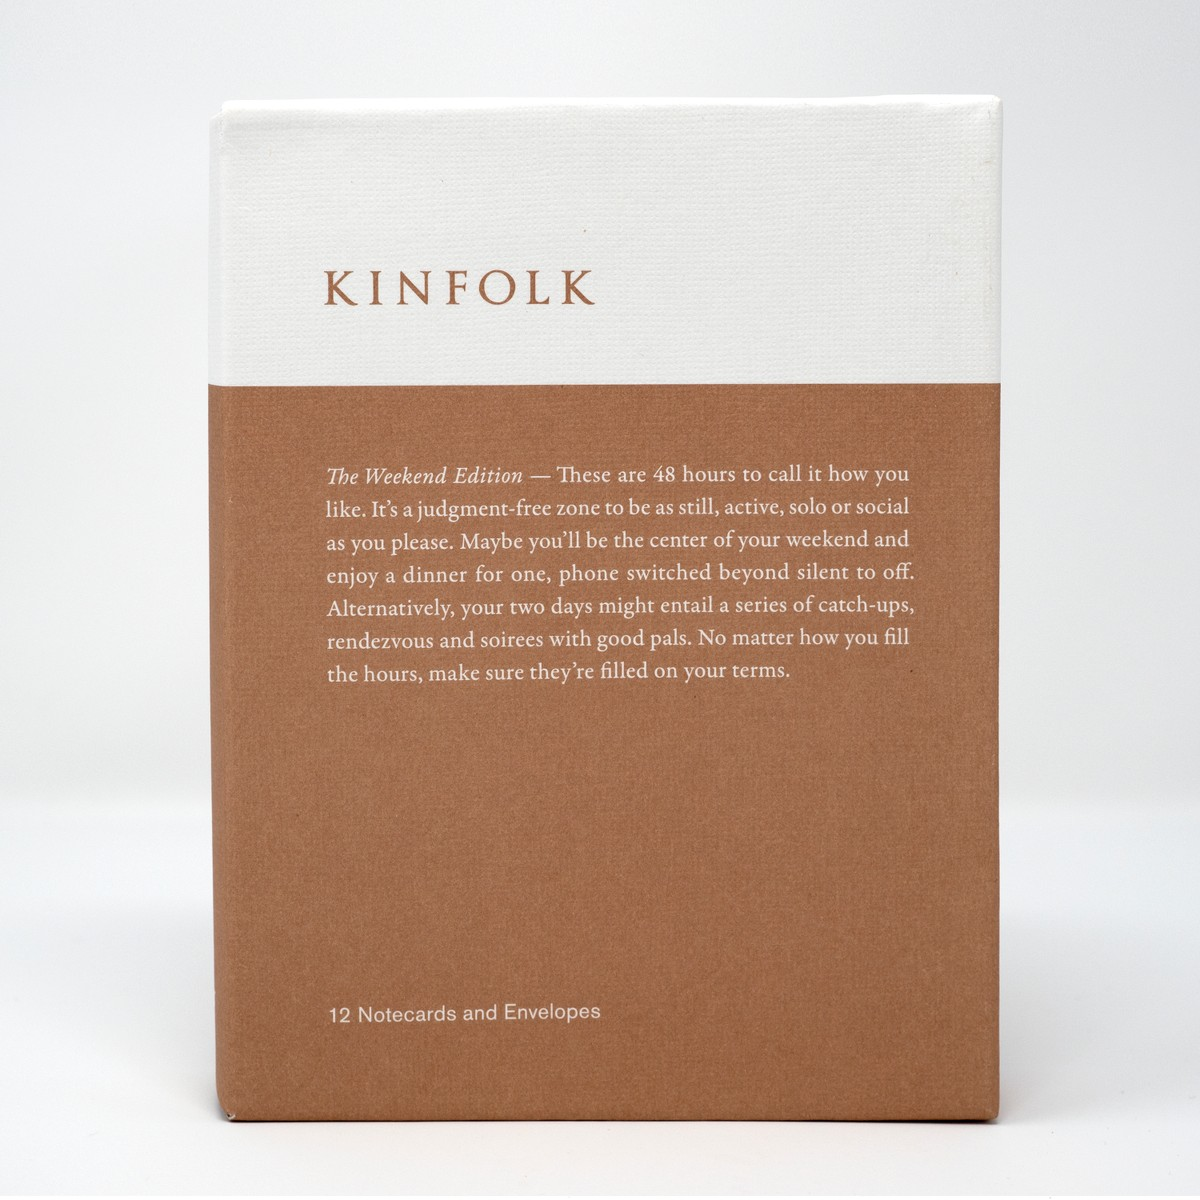 Photo of Kinfolk Cards: The Weekend Edition